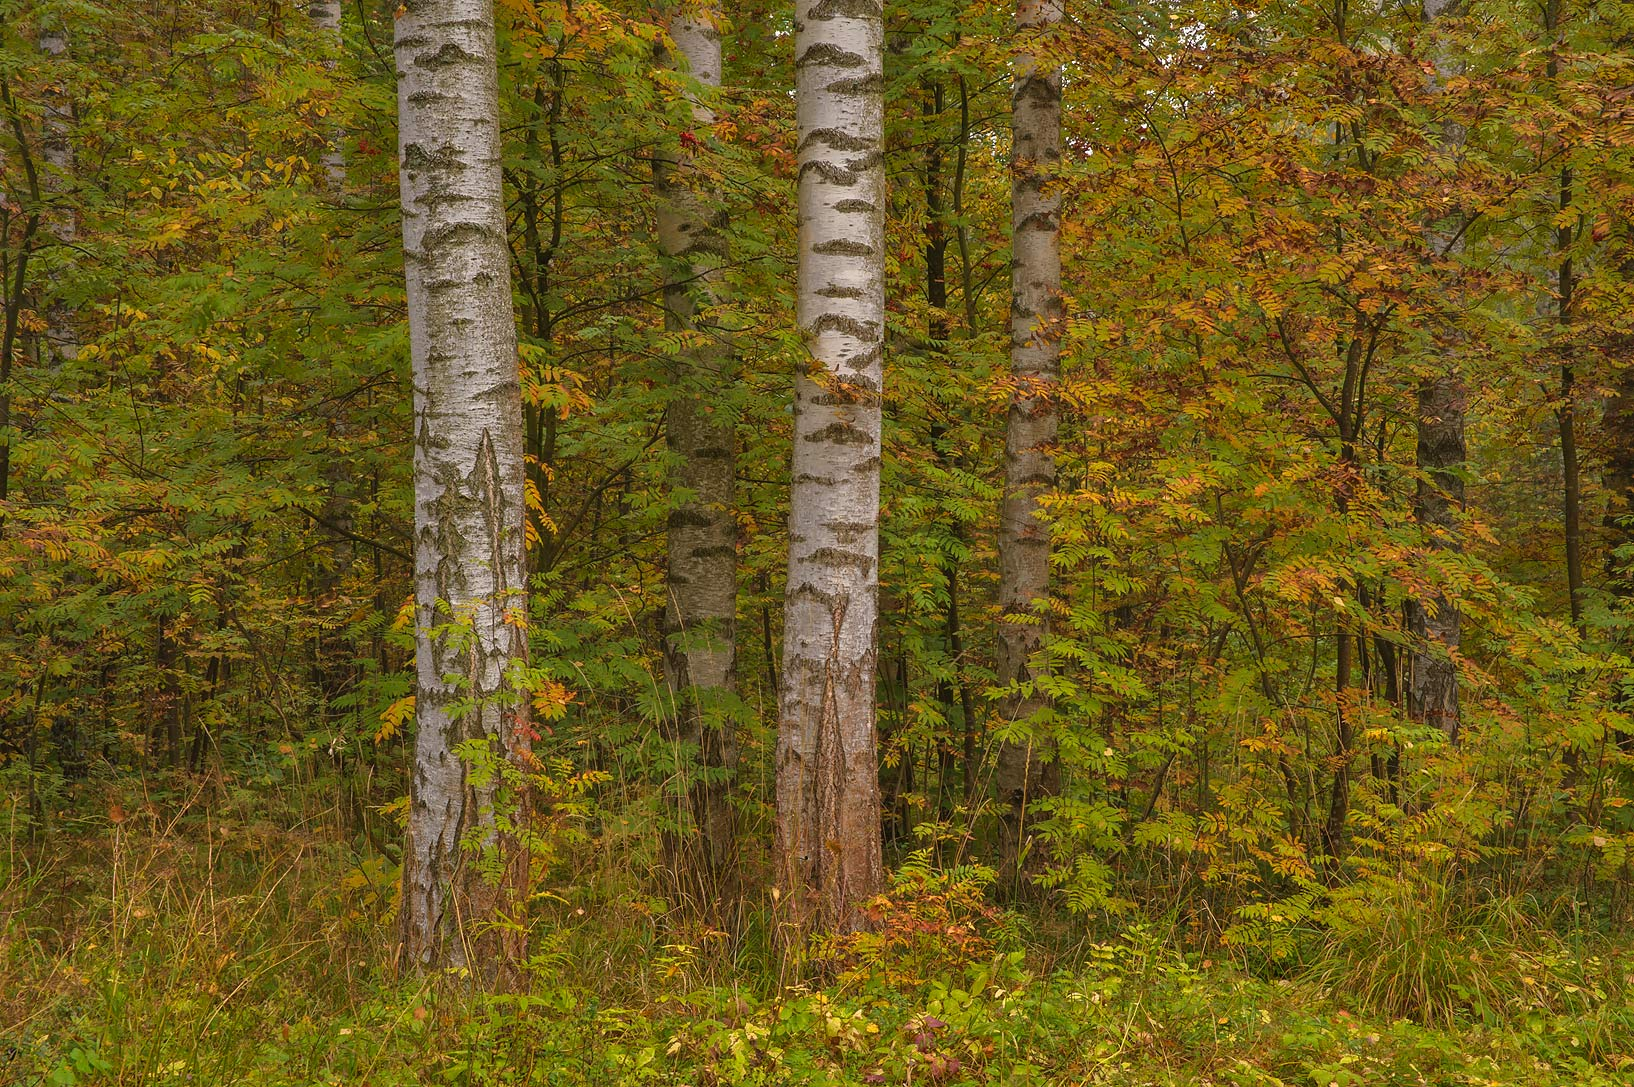 Fall colors of birch trees near Staroshaleynaya...a suburb of St.Petersburg, Russia